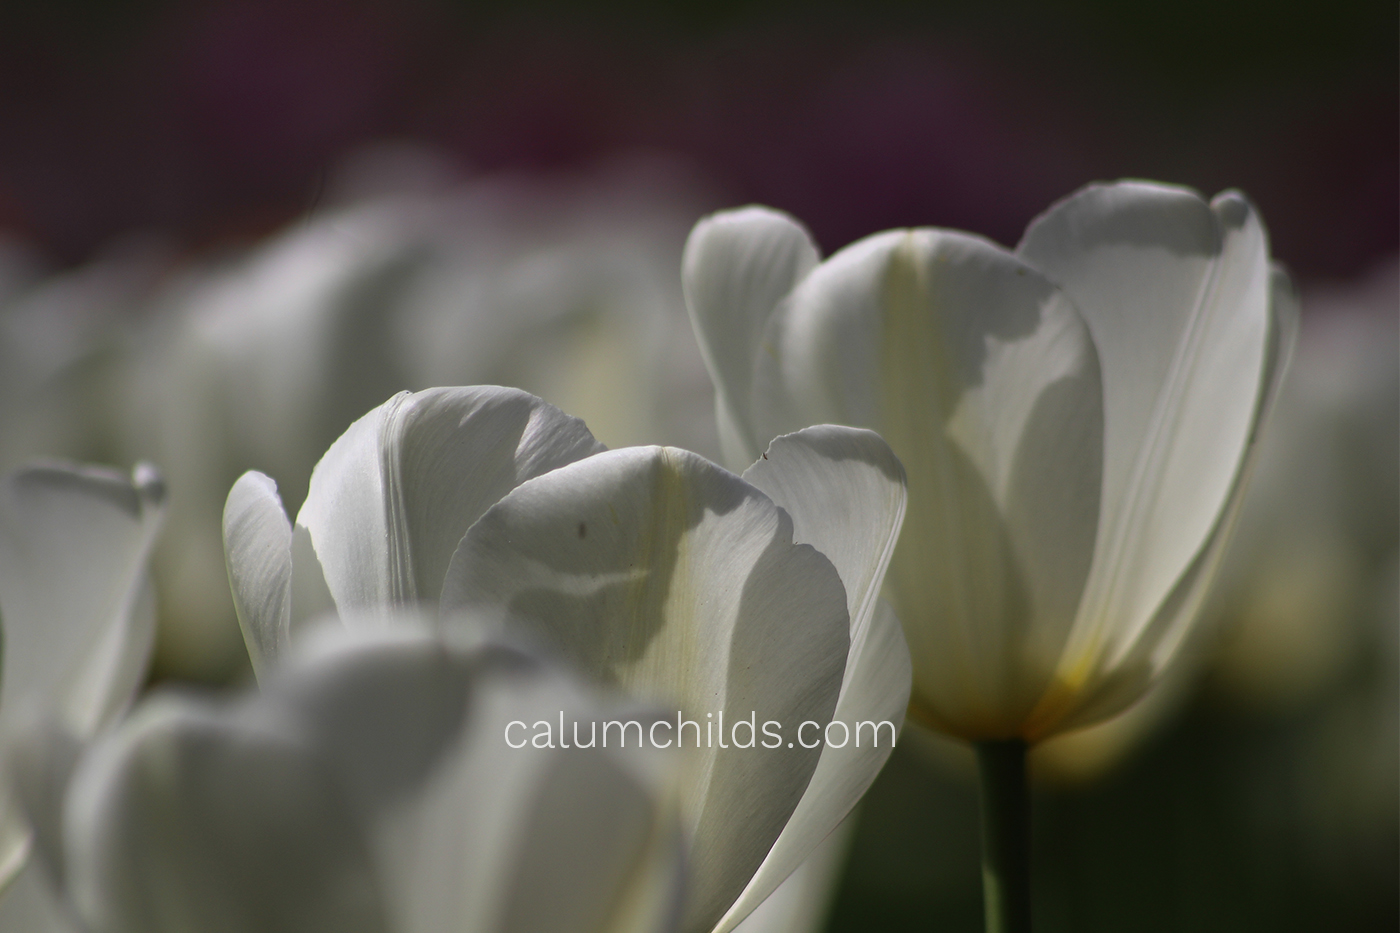 A white tulip in the middle shines in the spring sun.